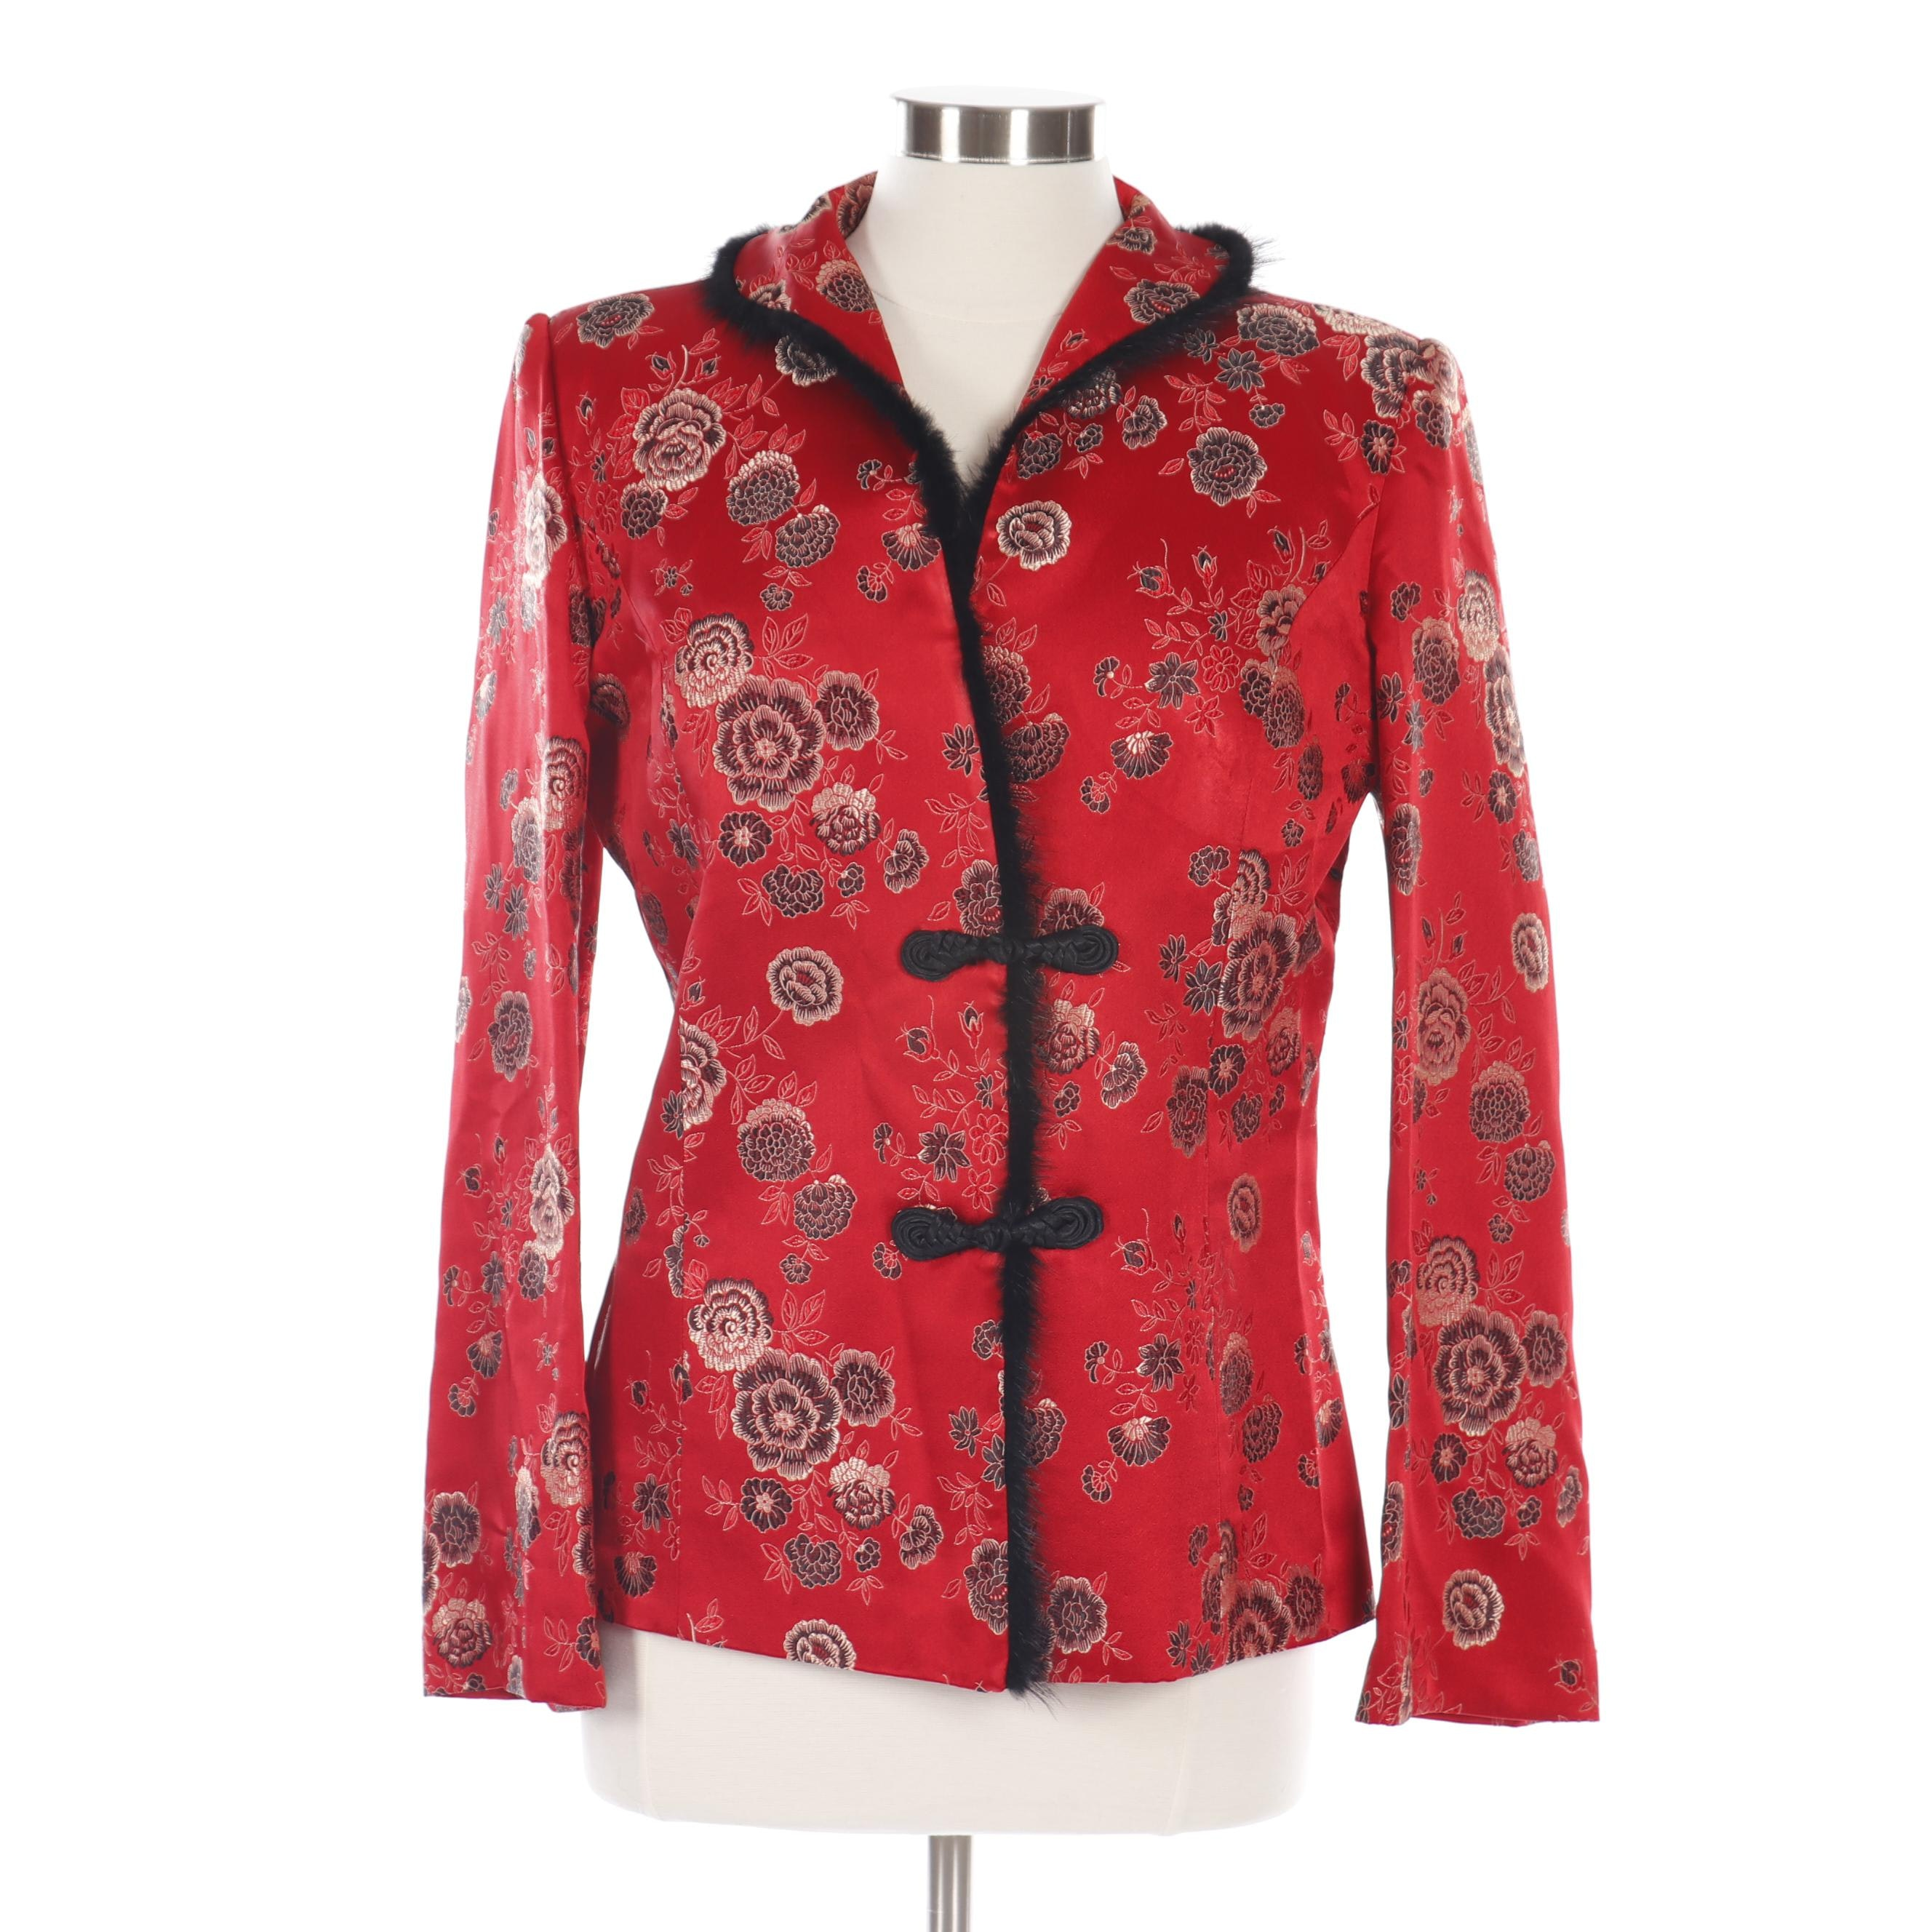 Women's Ling Yun Red Silk Blend Brocade Asian Jacket with Faux Fur Trim